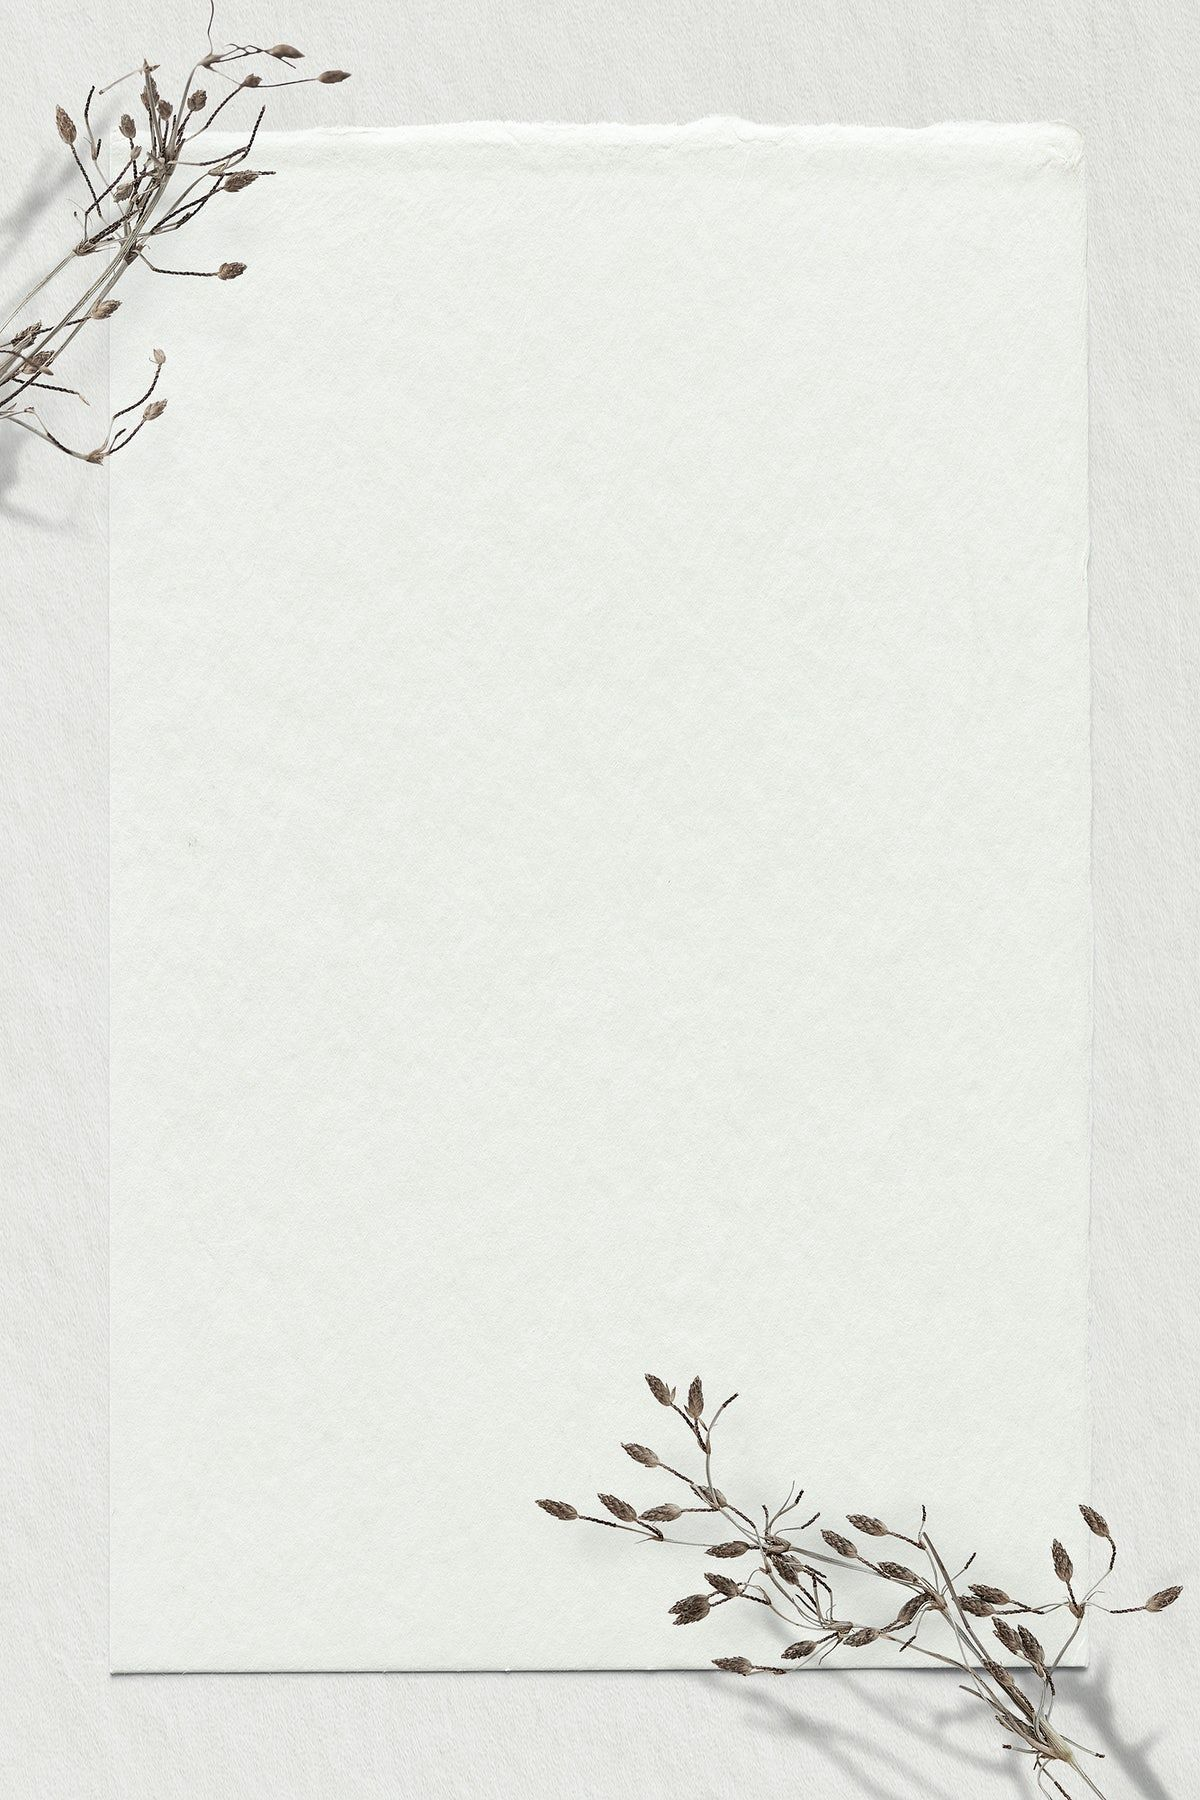 Download premium psd / image of Dry branch psd off white background text space by Nunny about background flower, paper flower, dried flower, flower frame, and dry flower 2466599